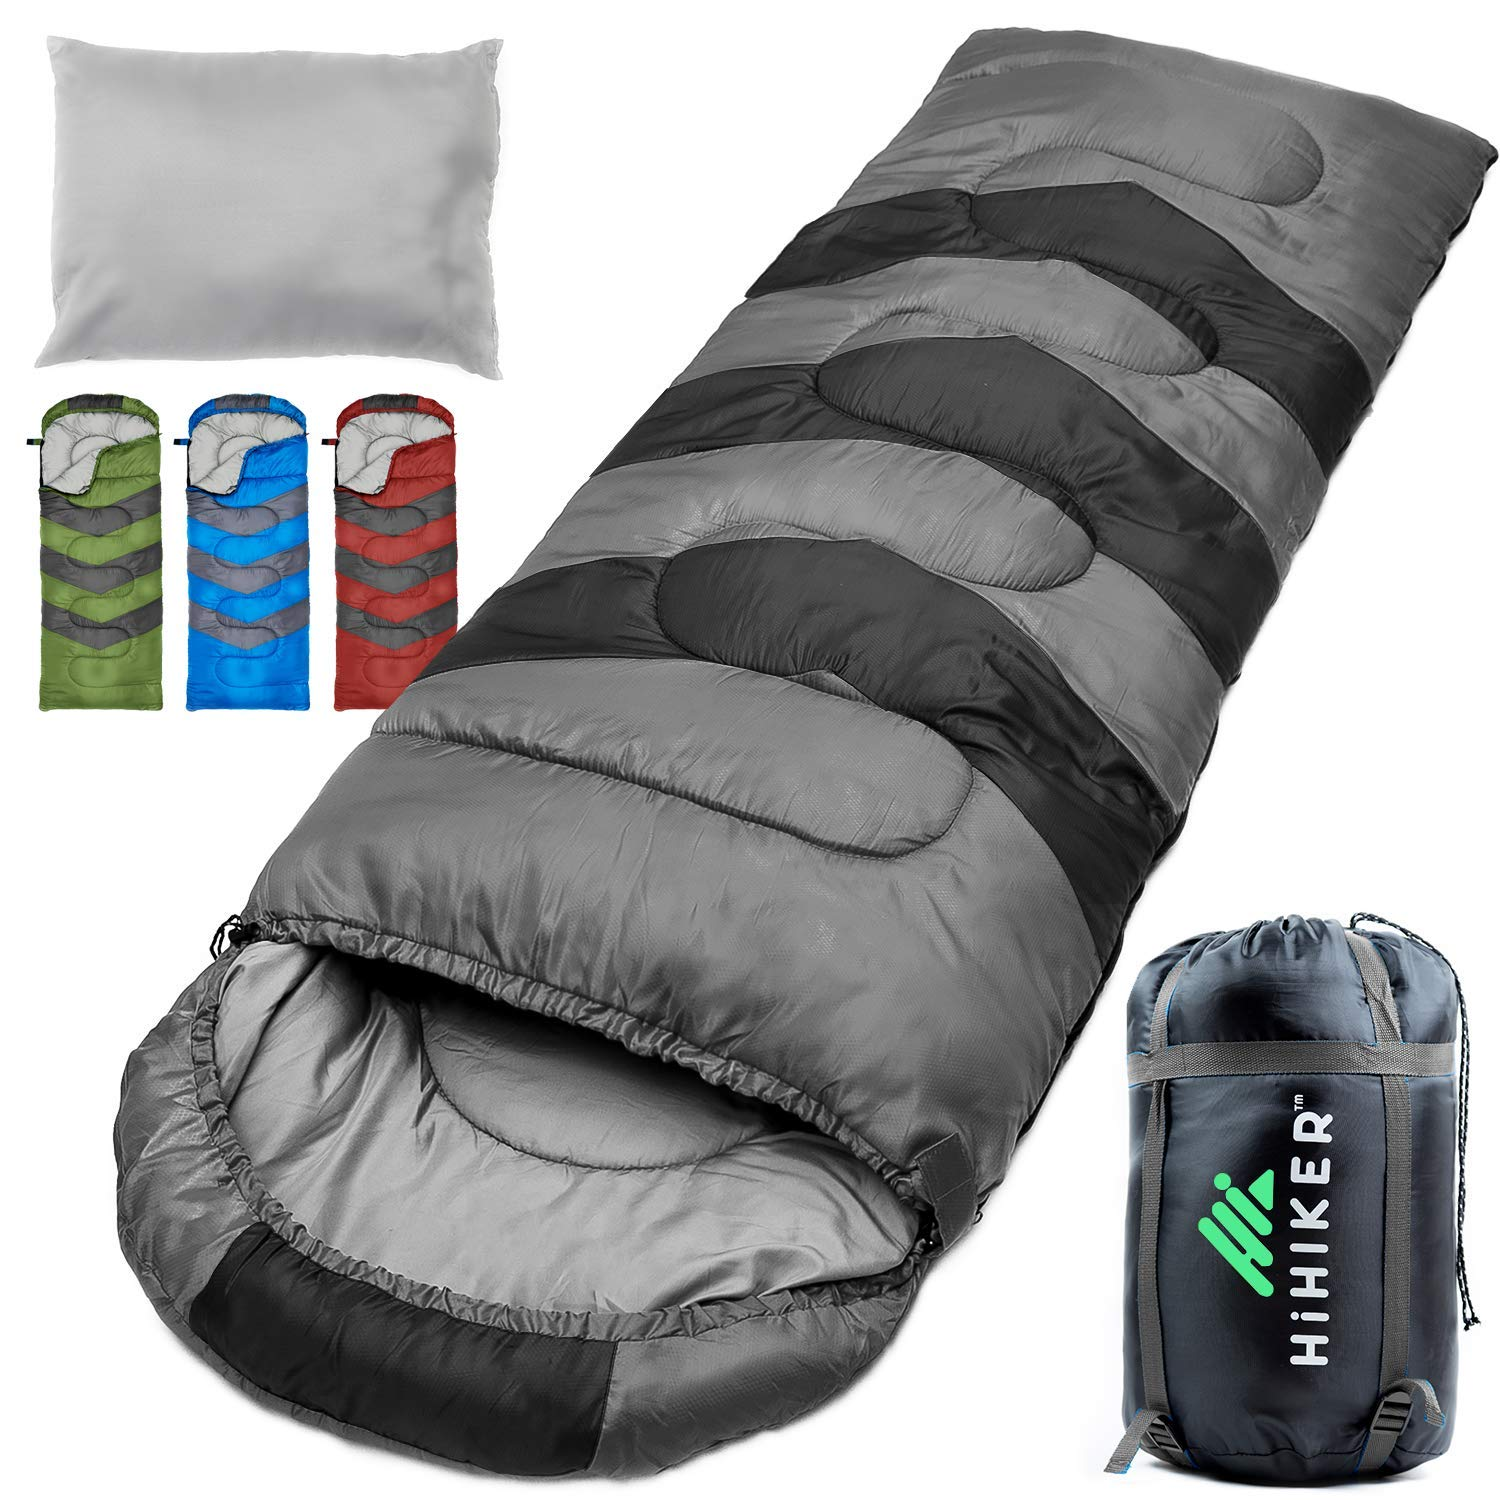 HiHiker Camping Sleeping Bag + Travel Pillow w/Compact Compression Sack - 4 Season Sleeping Bag for Adults & Kids - Lightweight Warm and Washable, for Hiking Traveling & Outdoor Activities (Gray) by HiHiker